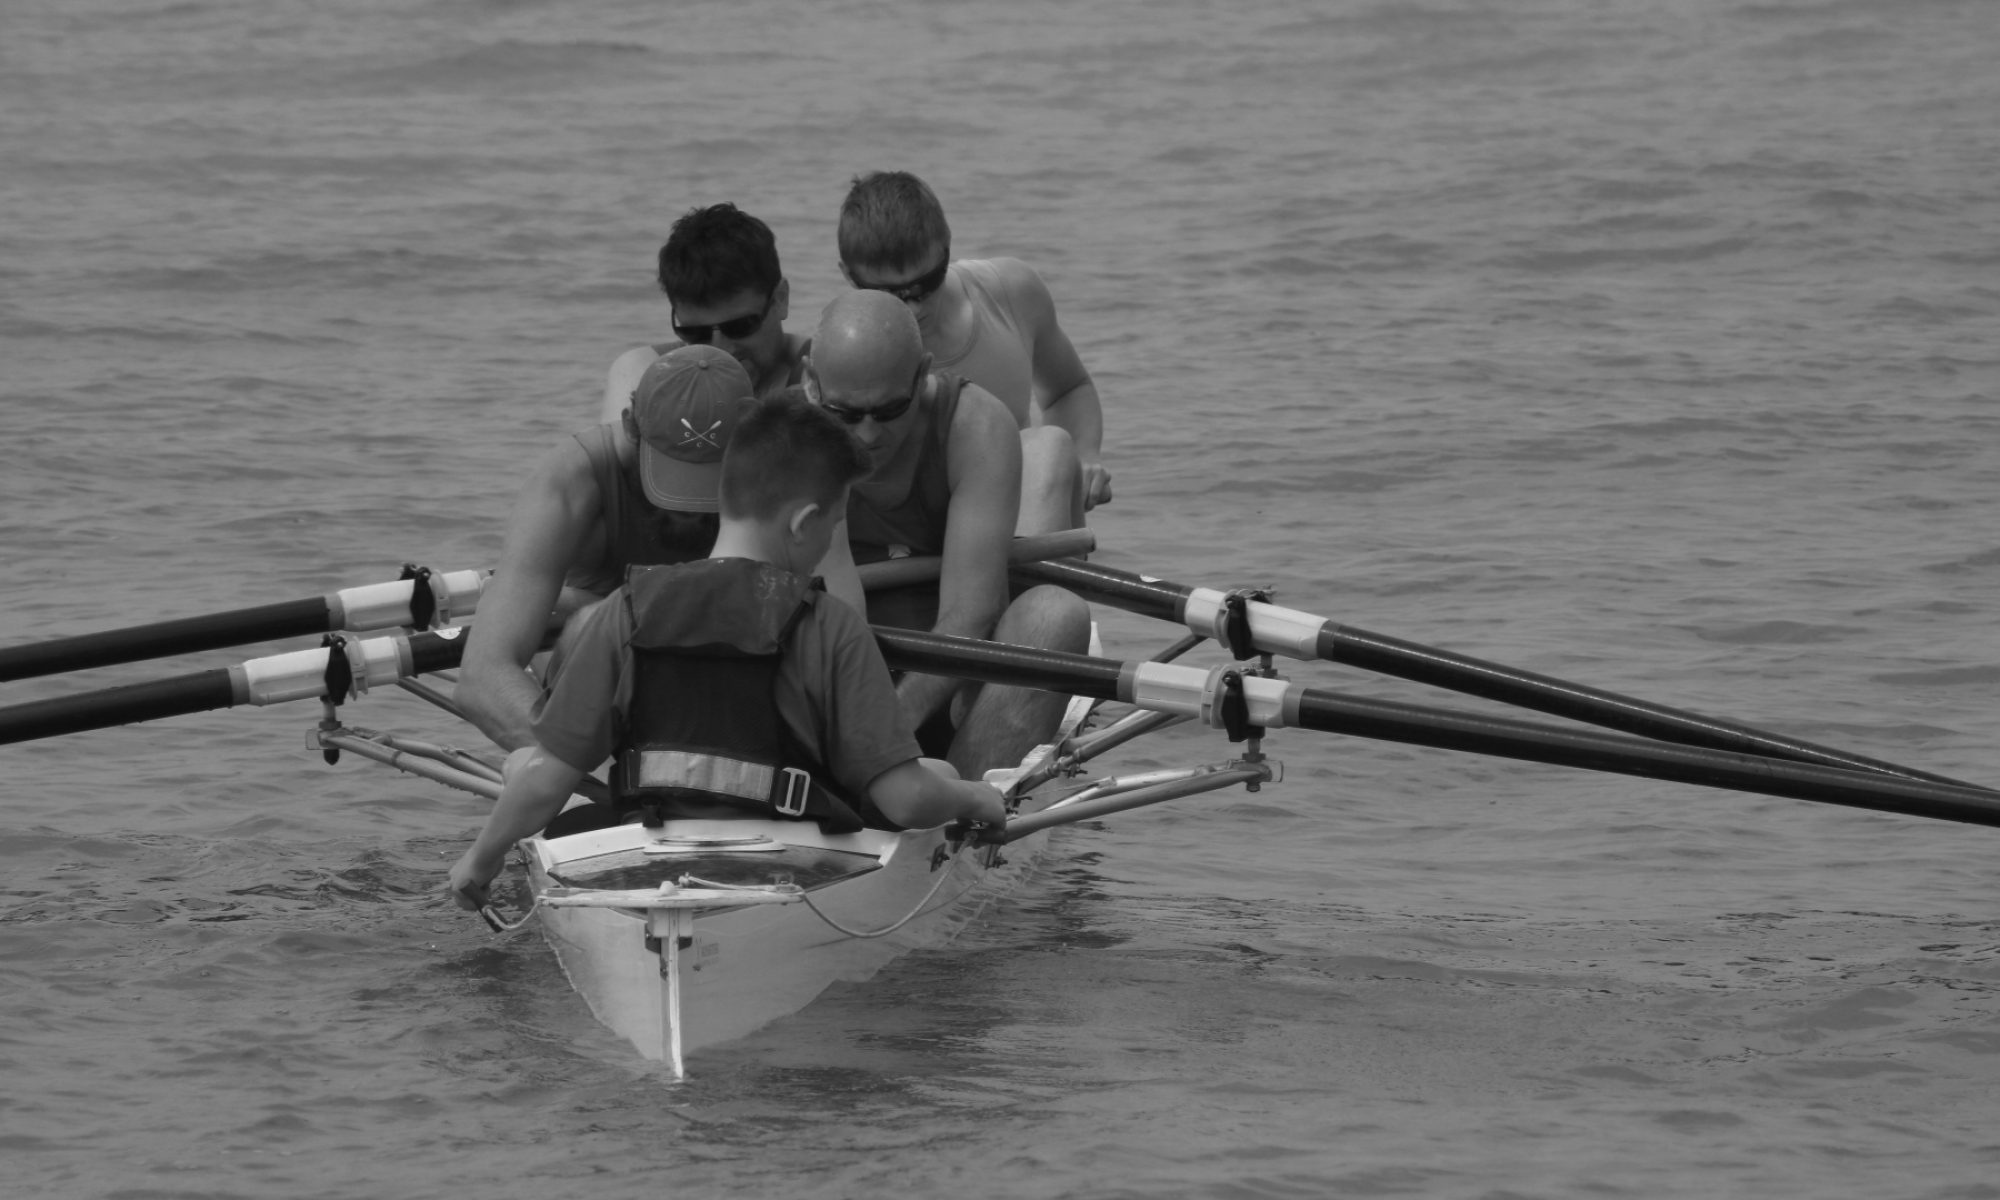 Herne Bay Amateur Rowing Club